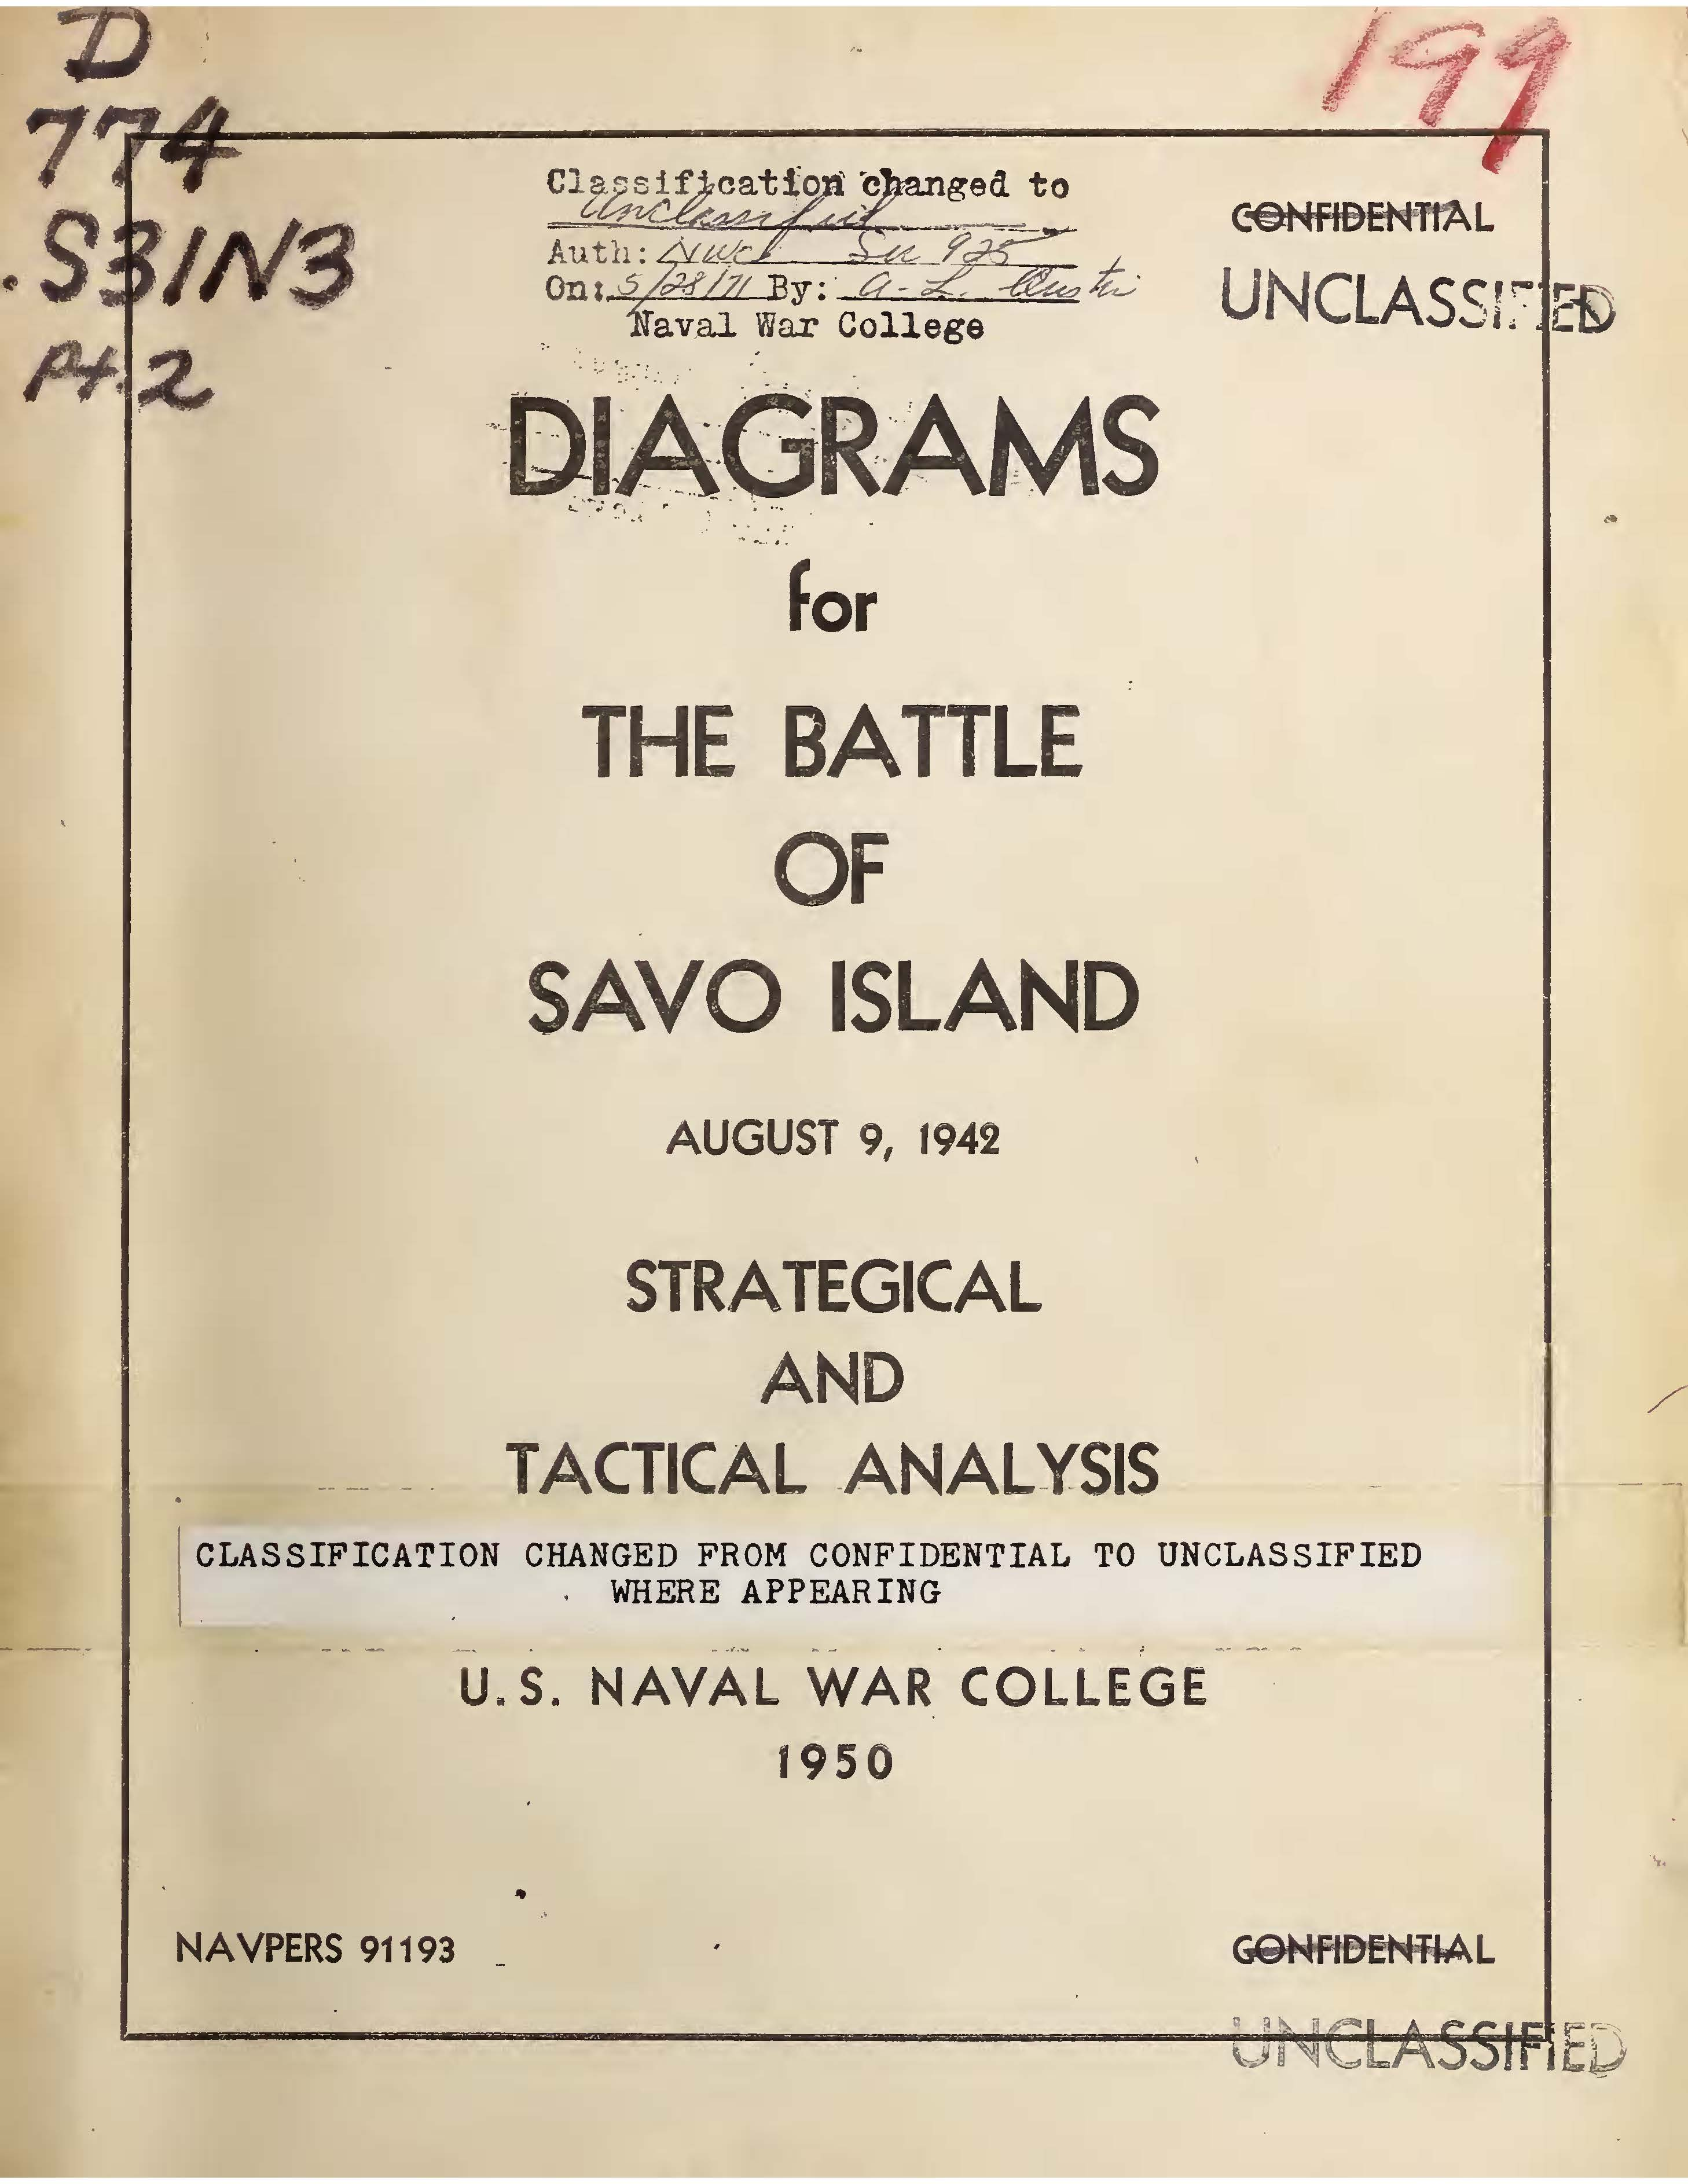 Diagrams for the Battle of Savo Island, August 9, 1942: Strategical and Tactical Analysis, 1950